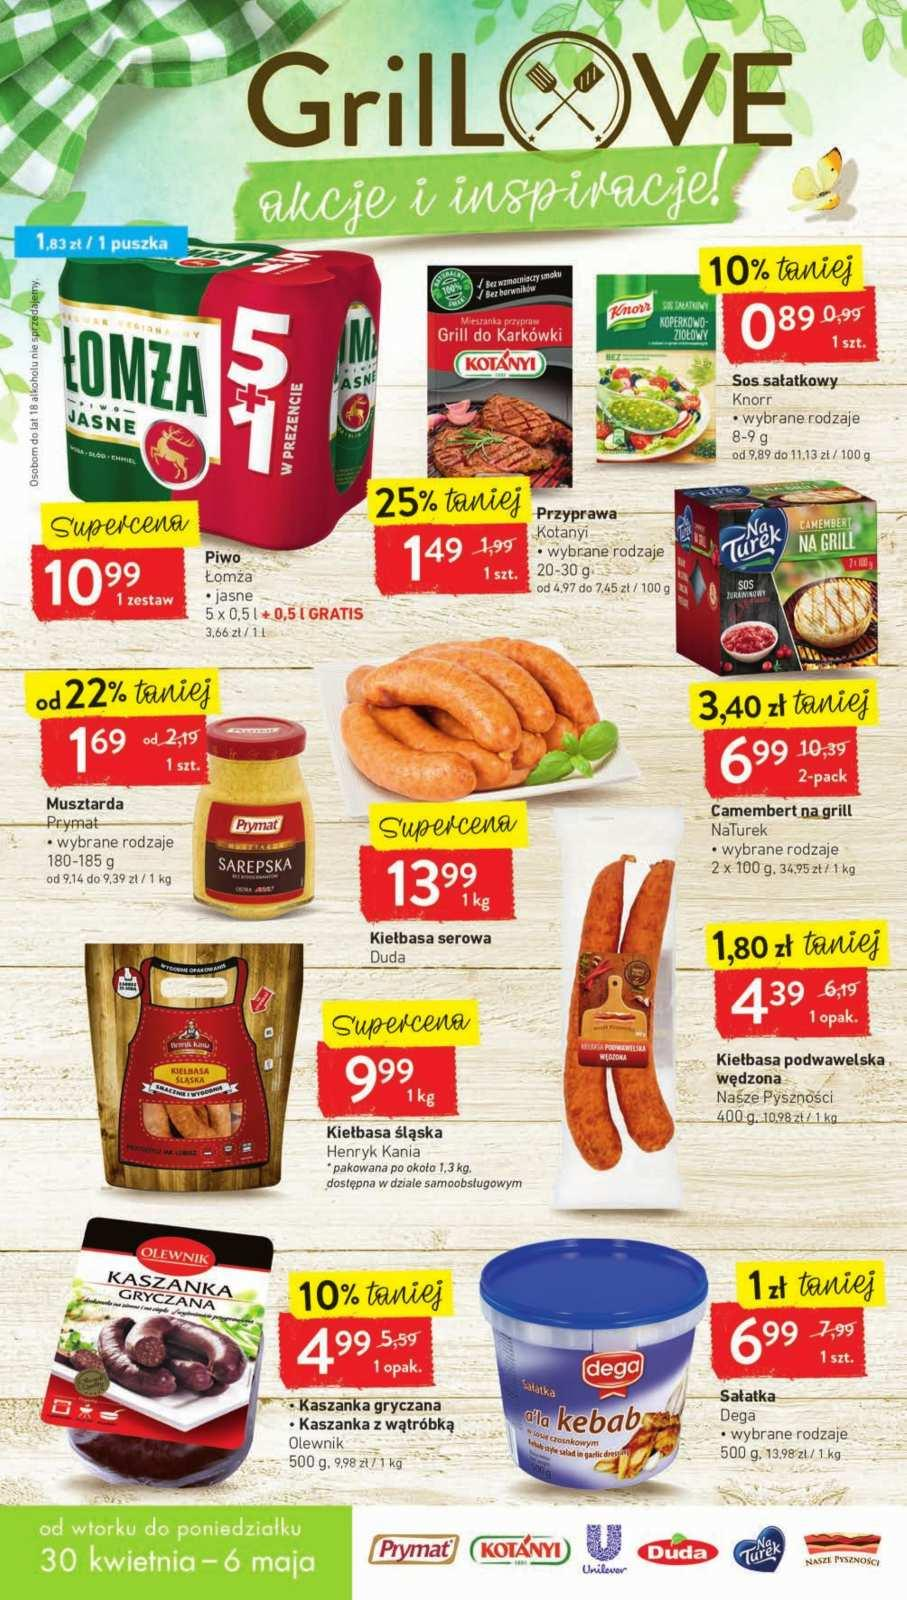 Gazetka promocyjna Intermarche do 06/05/2019 str.5